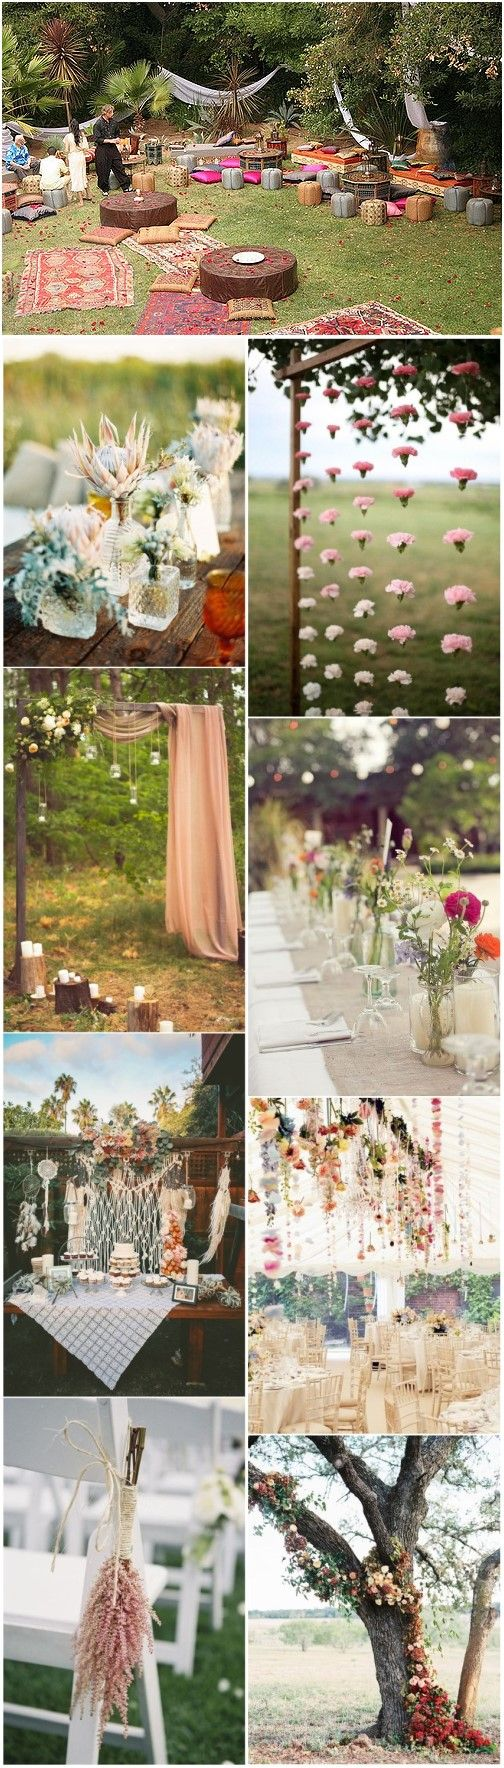 20 gorgeous boho wedding d cor ideas on pinterest boho weddings and wedding Gorgeous home decor pinterest